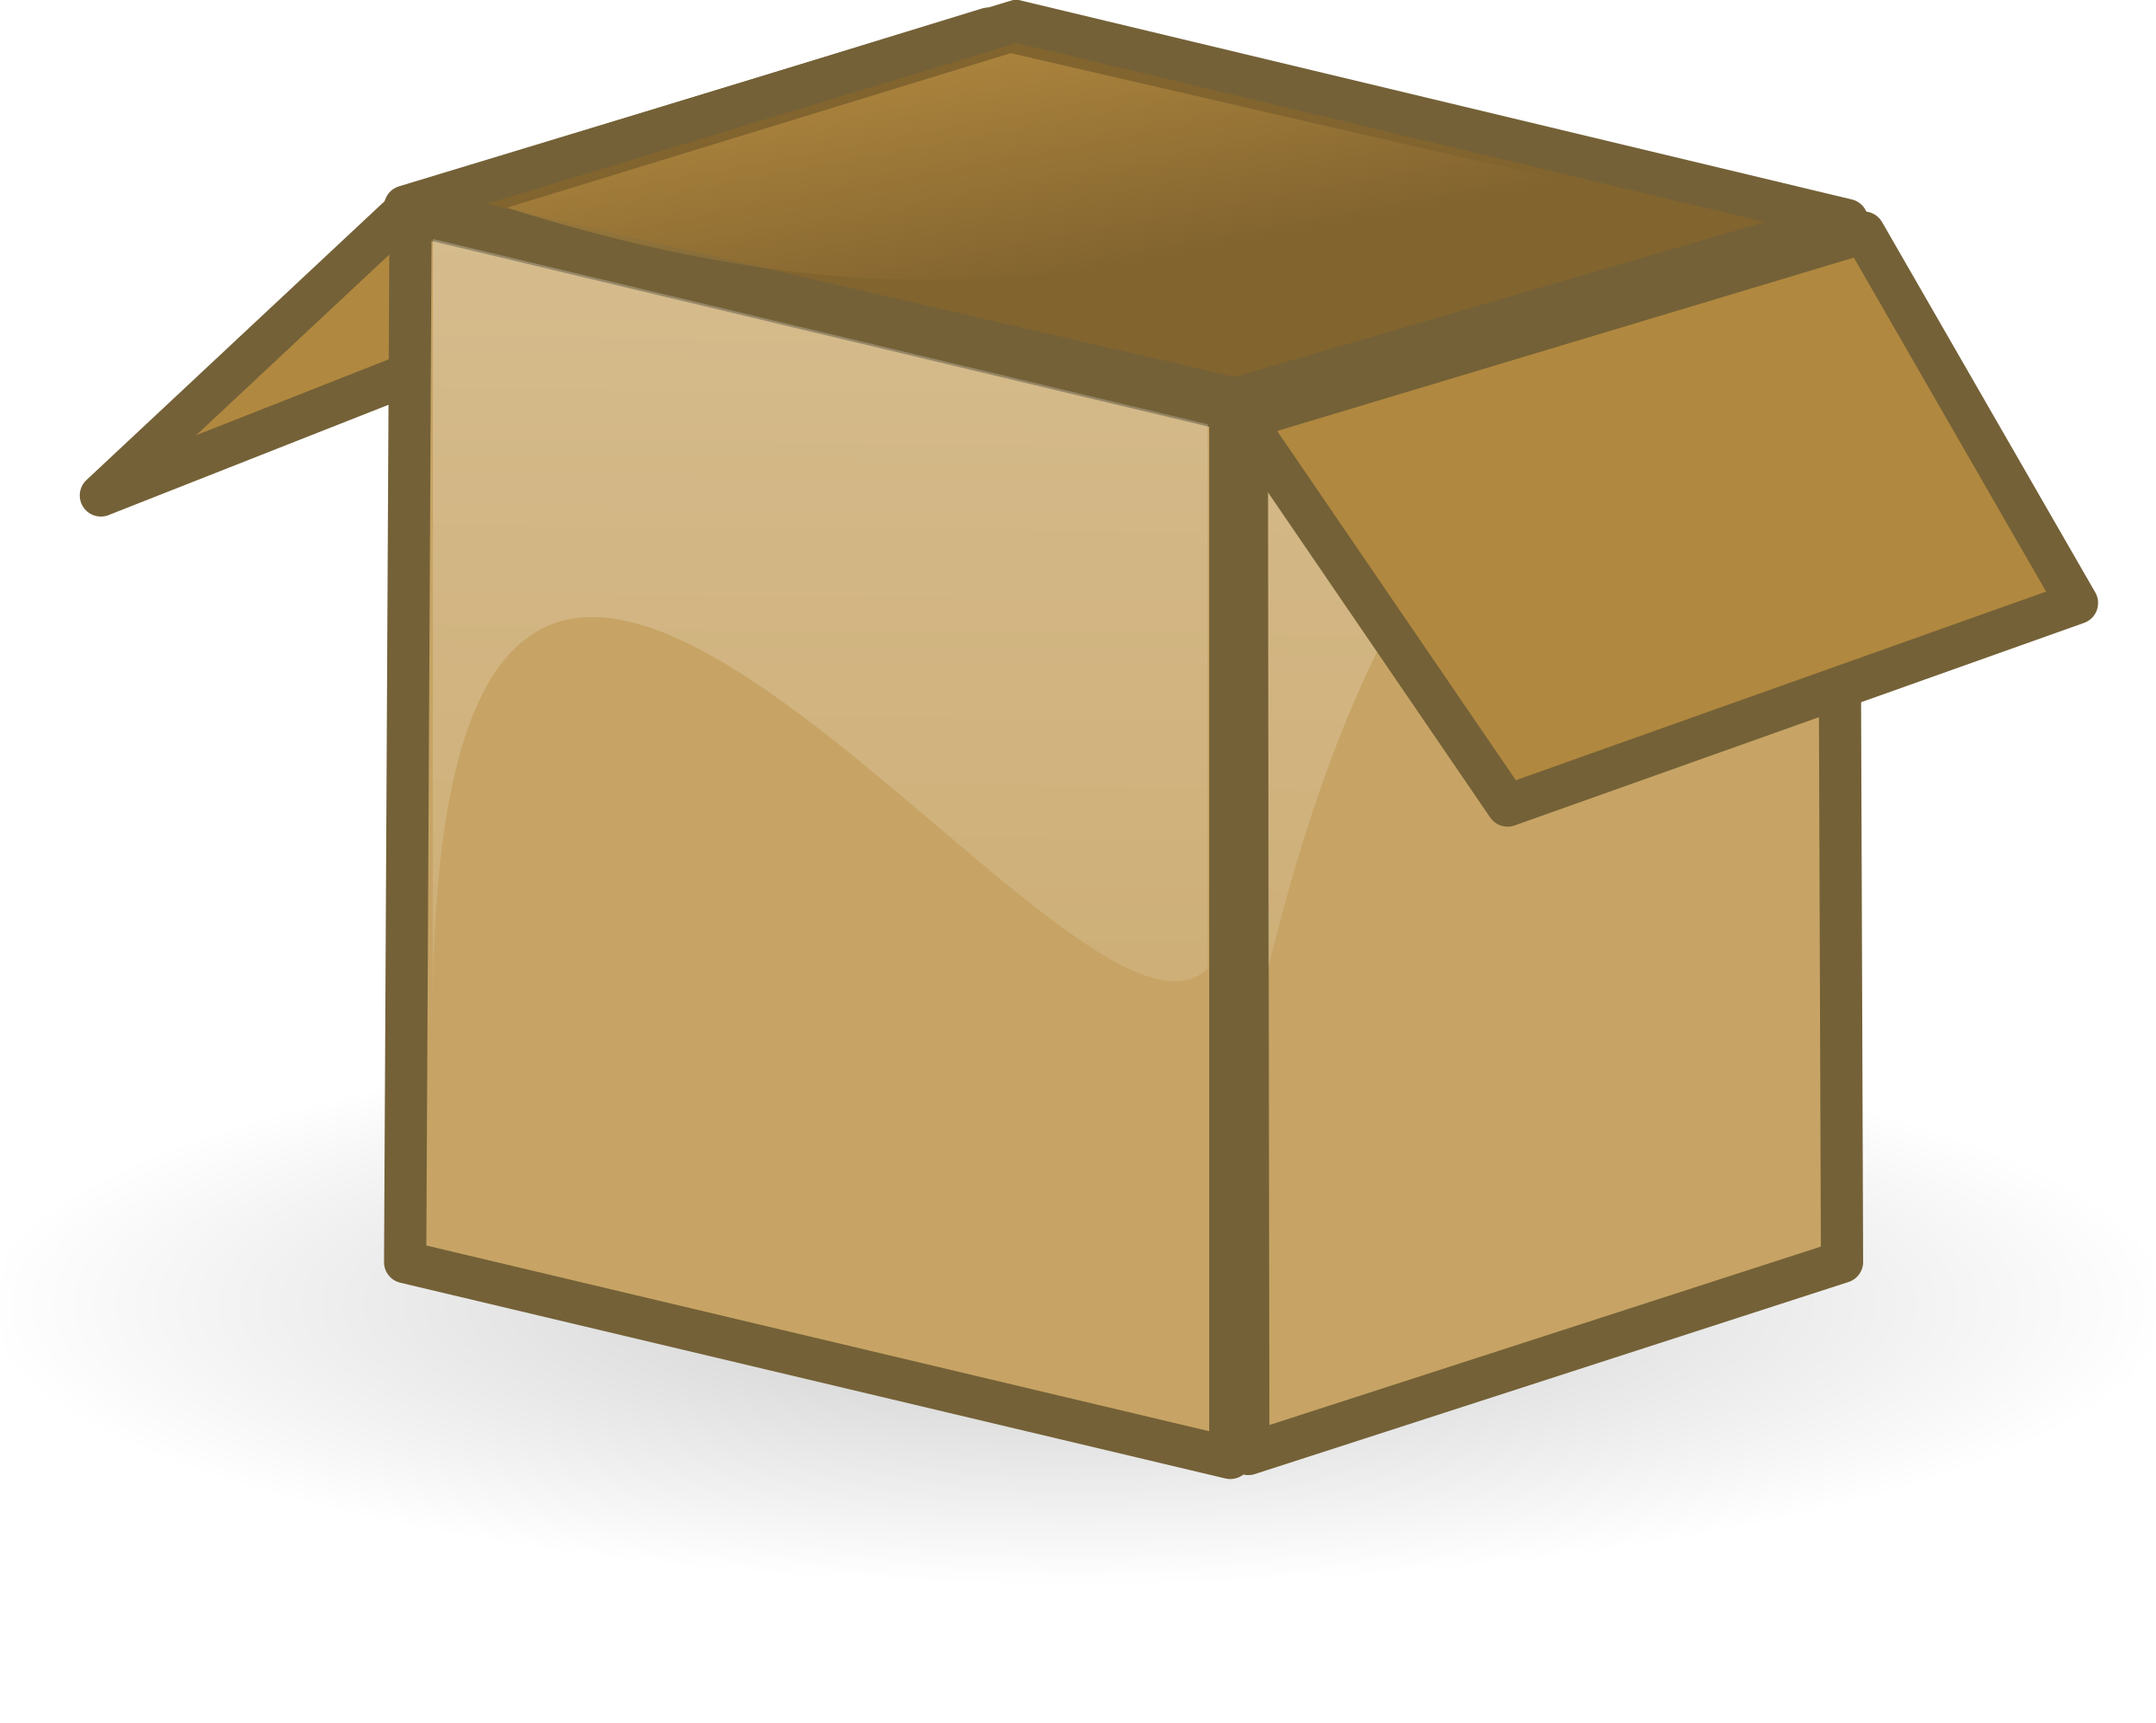 2400x1918 Open Box Clipart Free Collection Download And Share Open Box Clipart